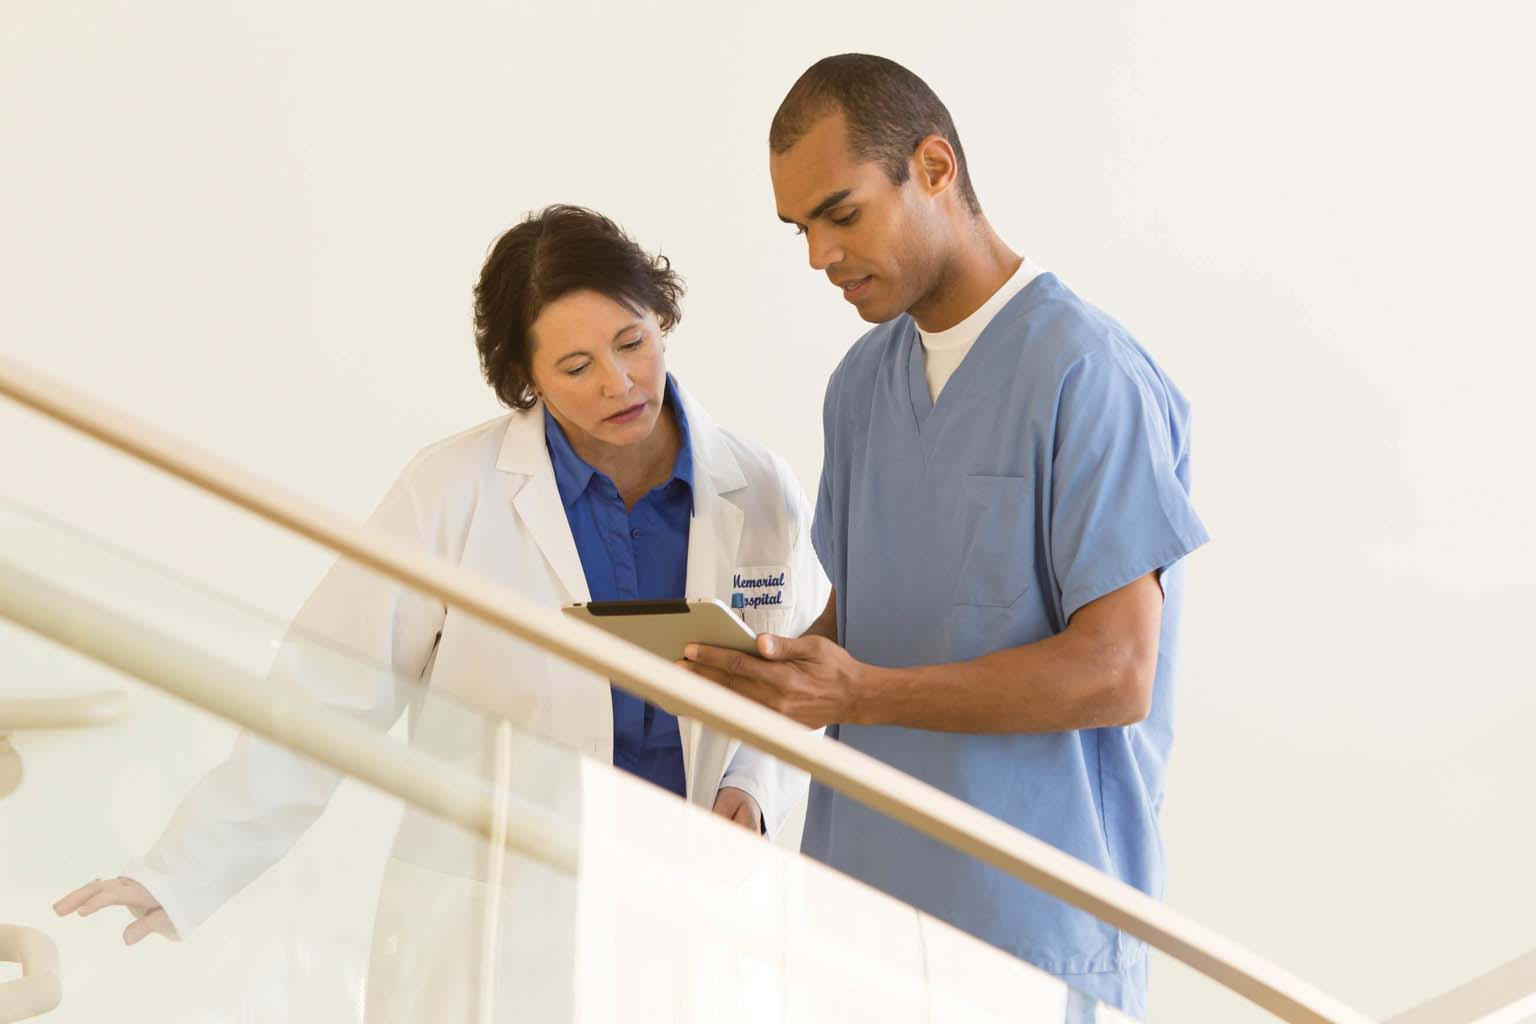 doctor and nurse looking at tablet on stairway